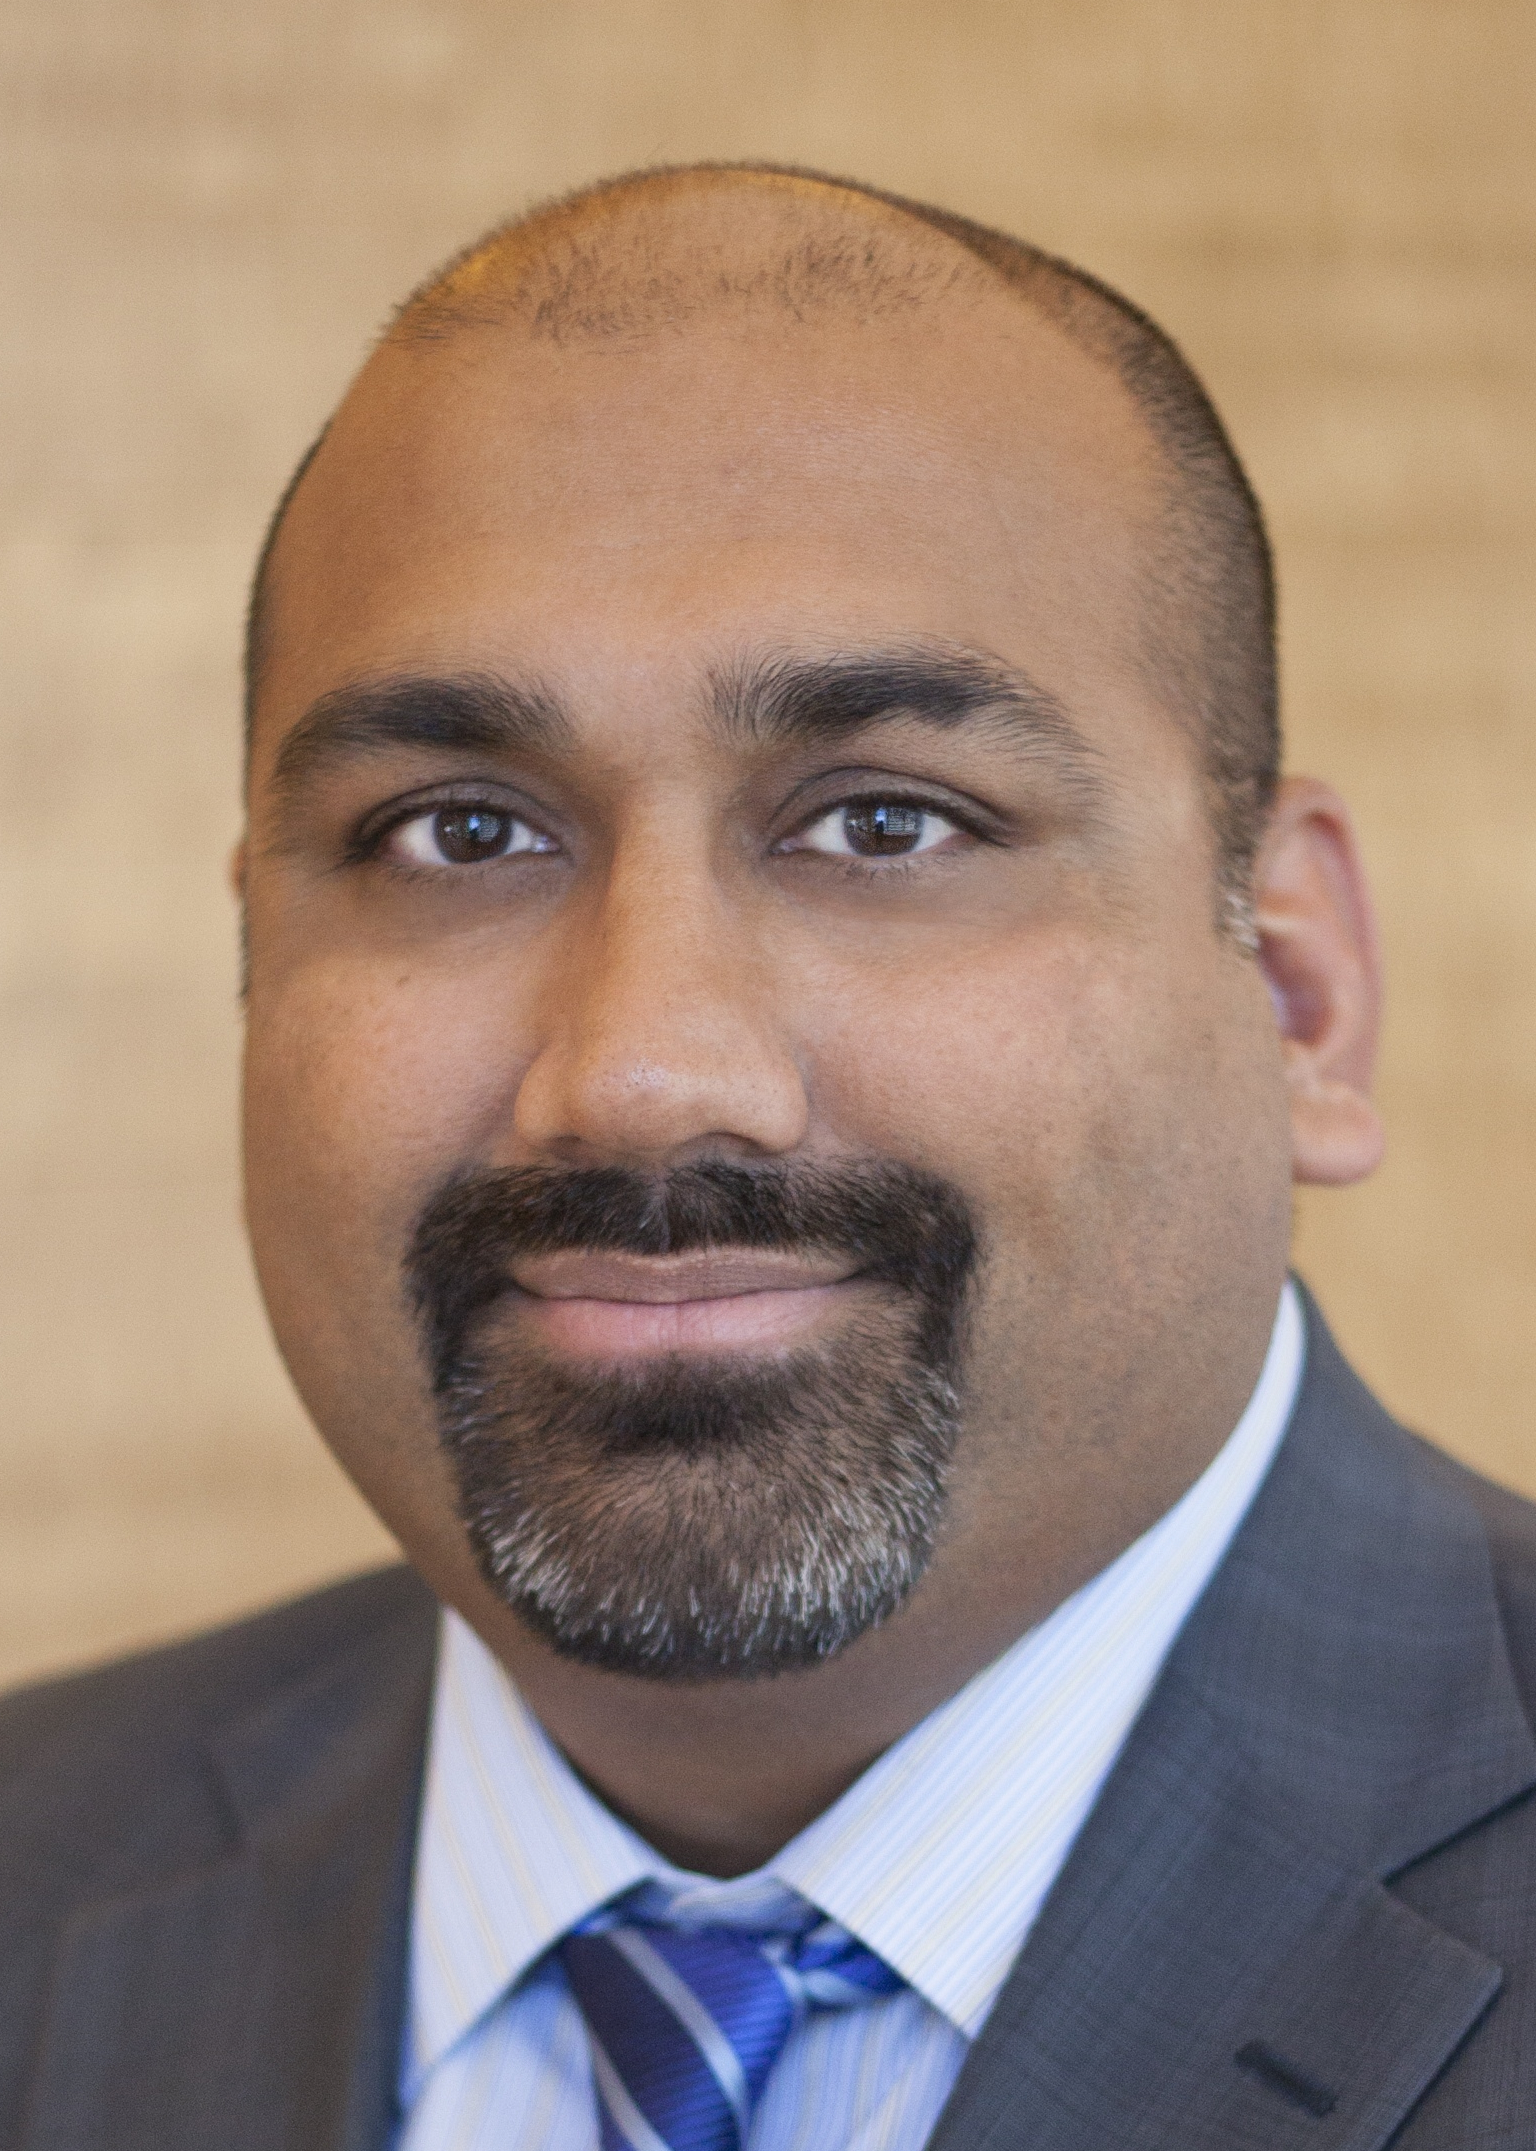 Manish Bhatt, MetLife